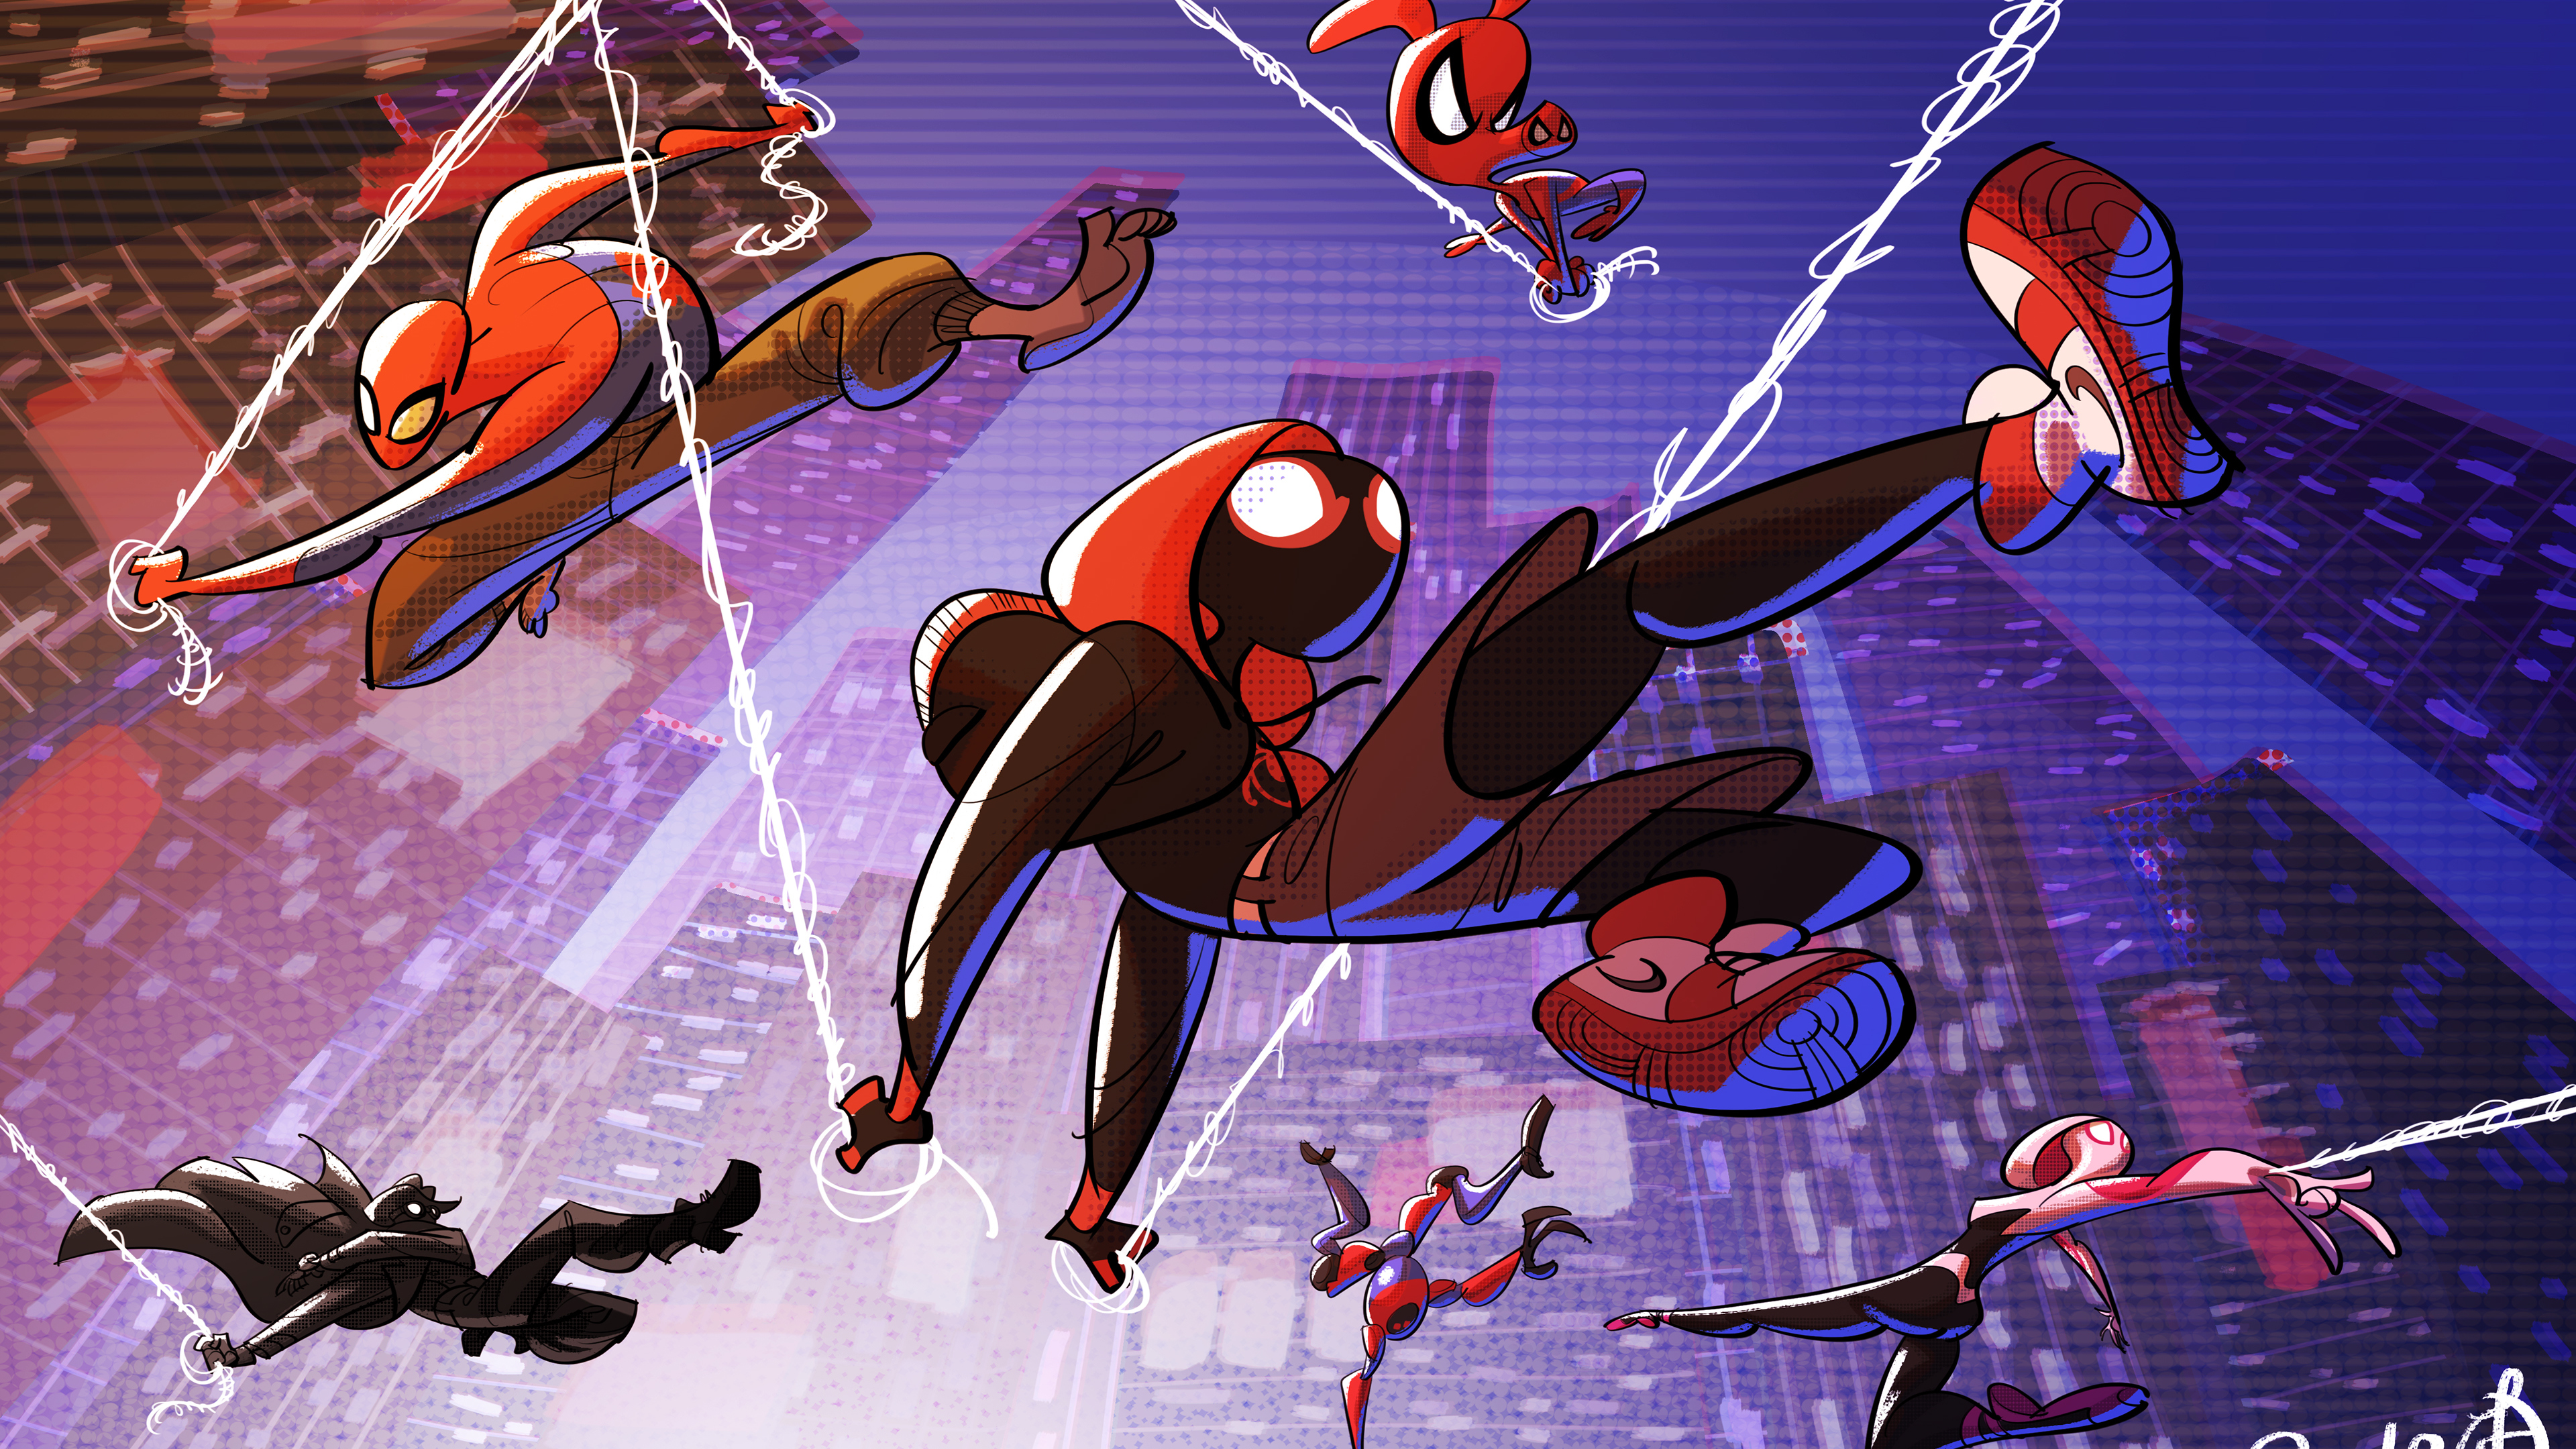 Wallpaper 4k Spider Verse Cartoon Art 4k 4k Wallpapers Artist